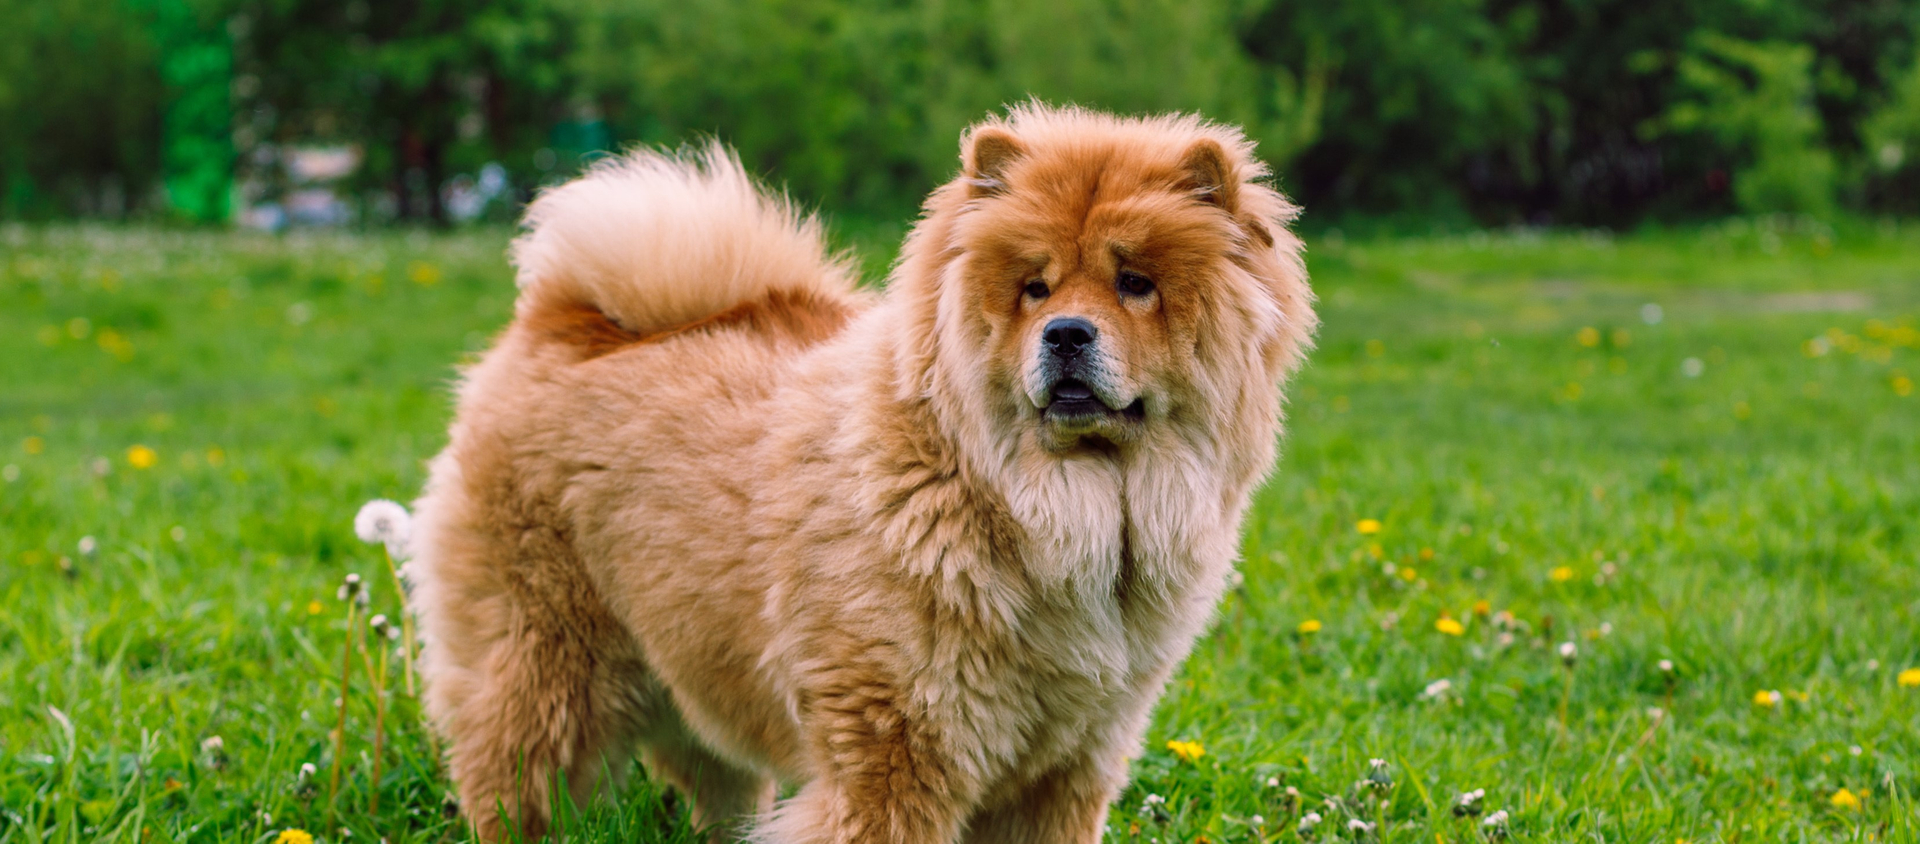 A fluffy Chow Chow poses on grass.